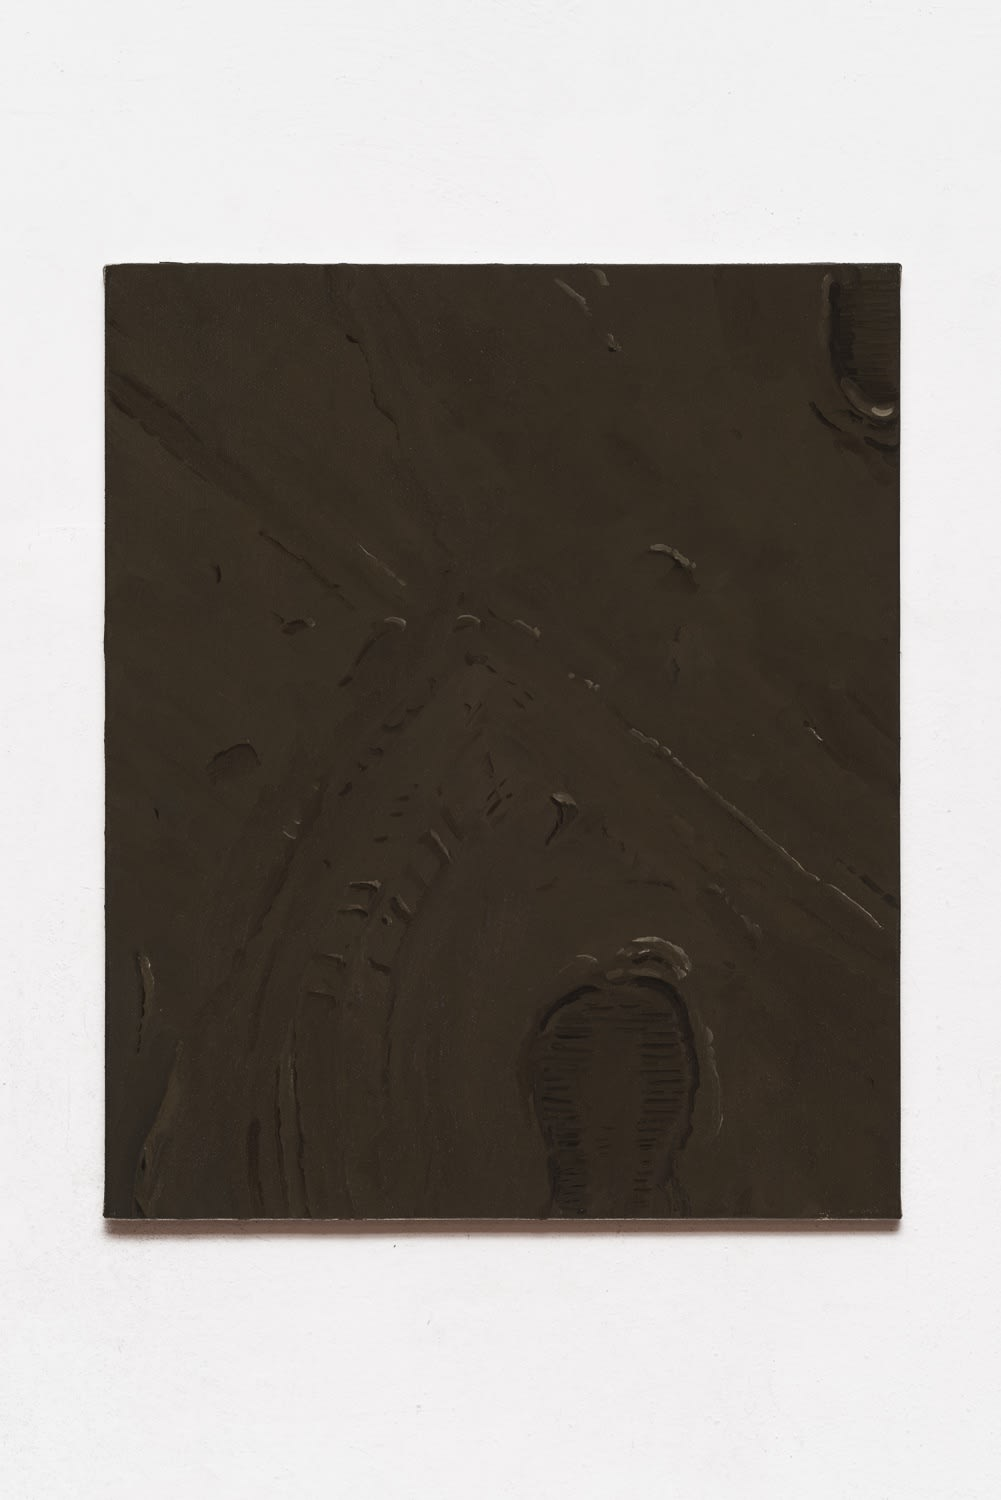 Michele Tocca In the mud (parking lot), 2021